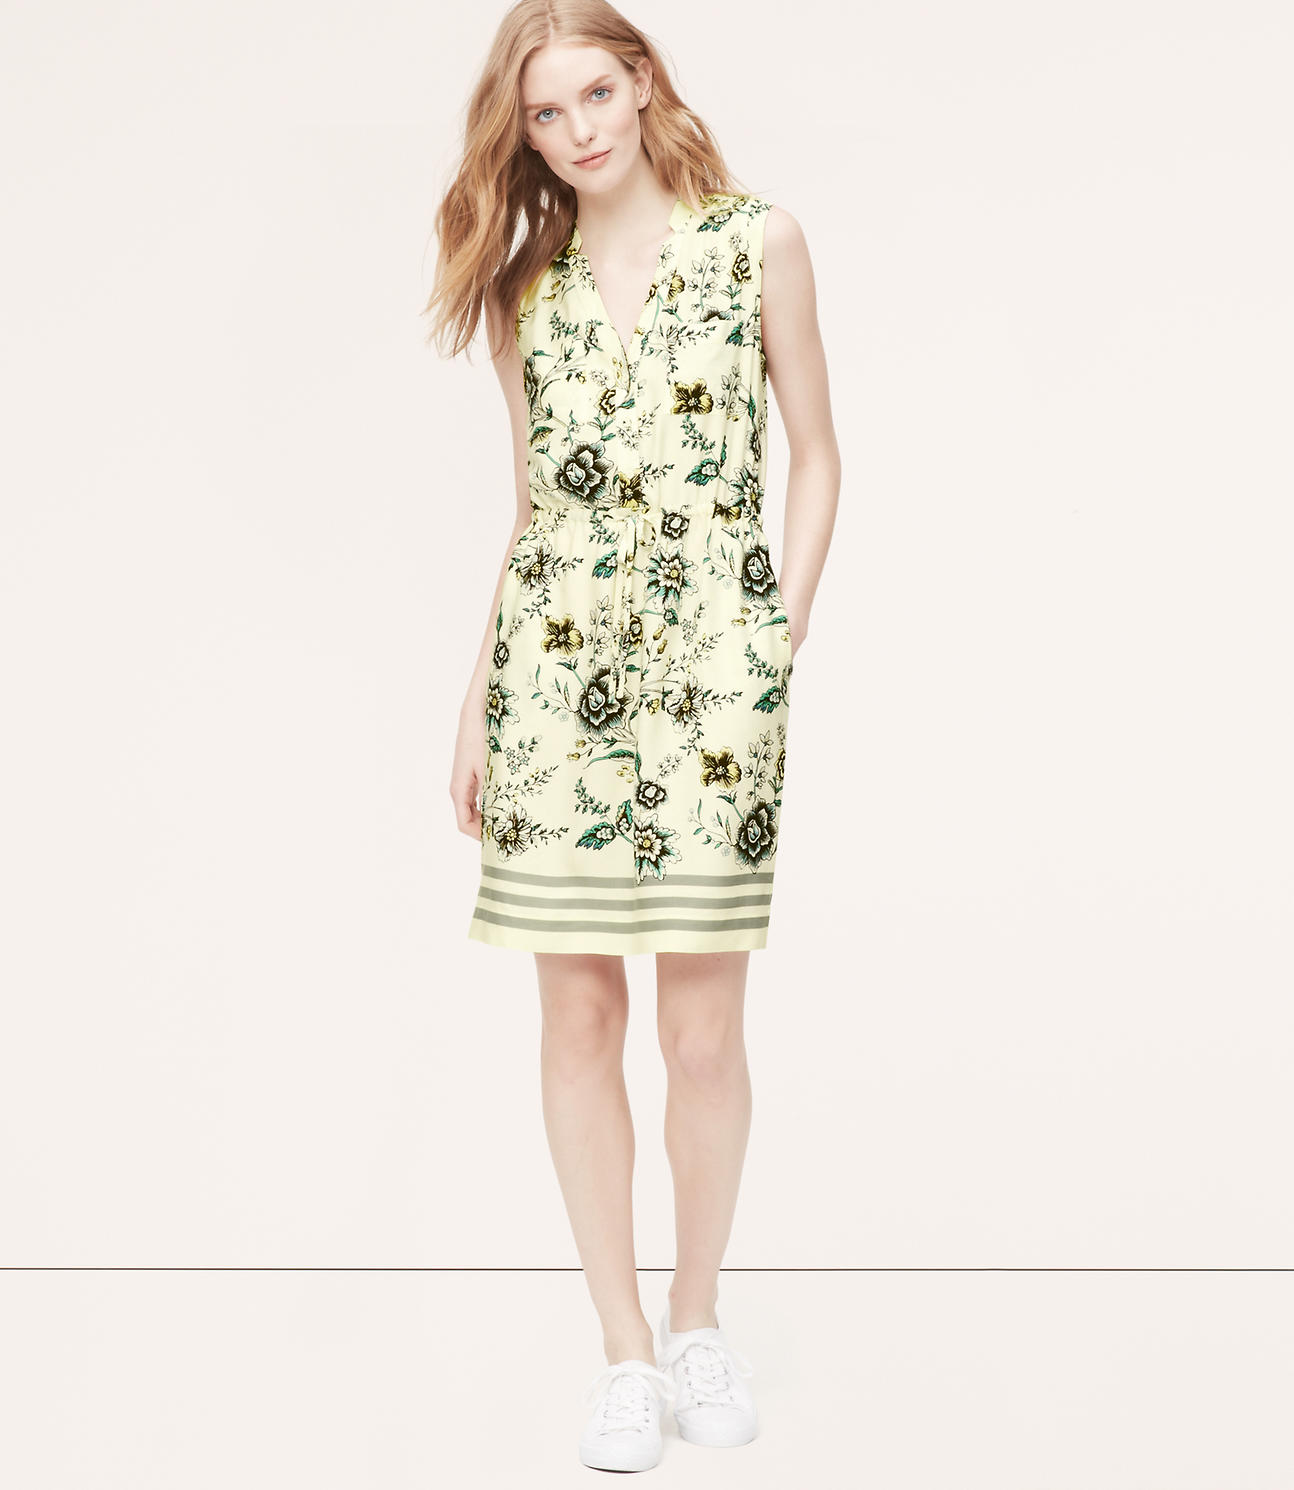 Primary Image of Wallpaper Floral Sleeveless Shirtdress